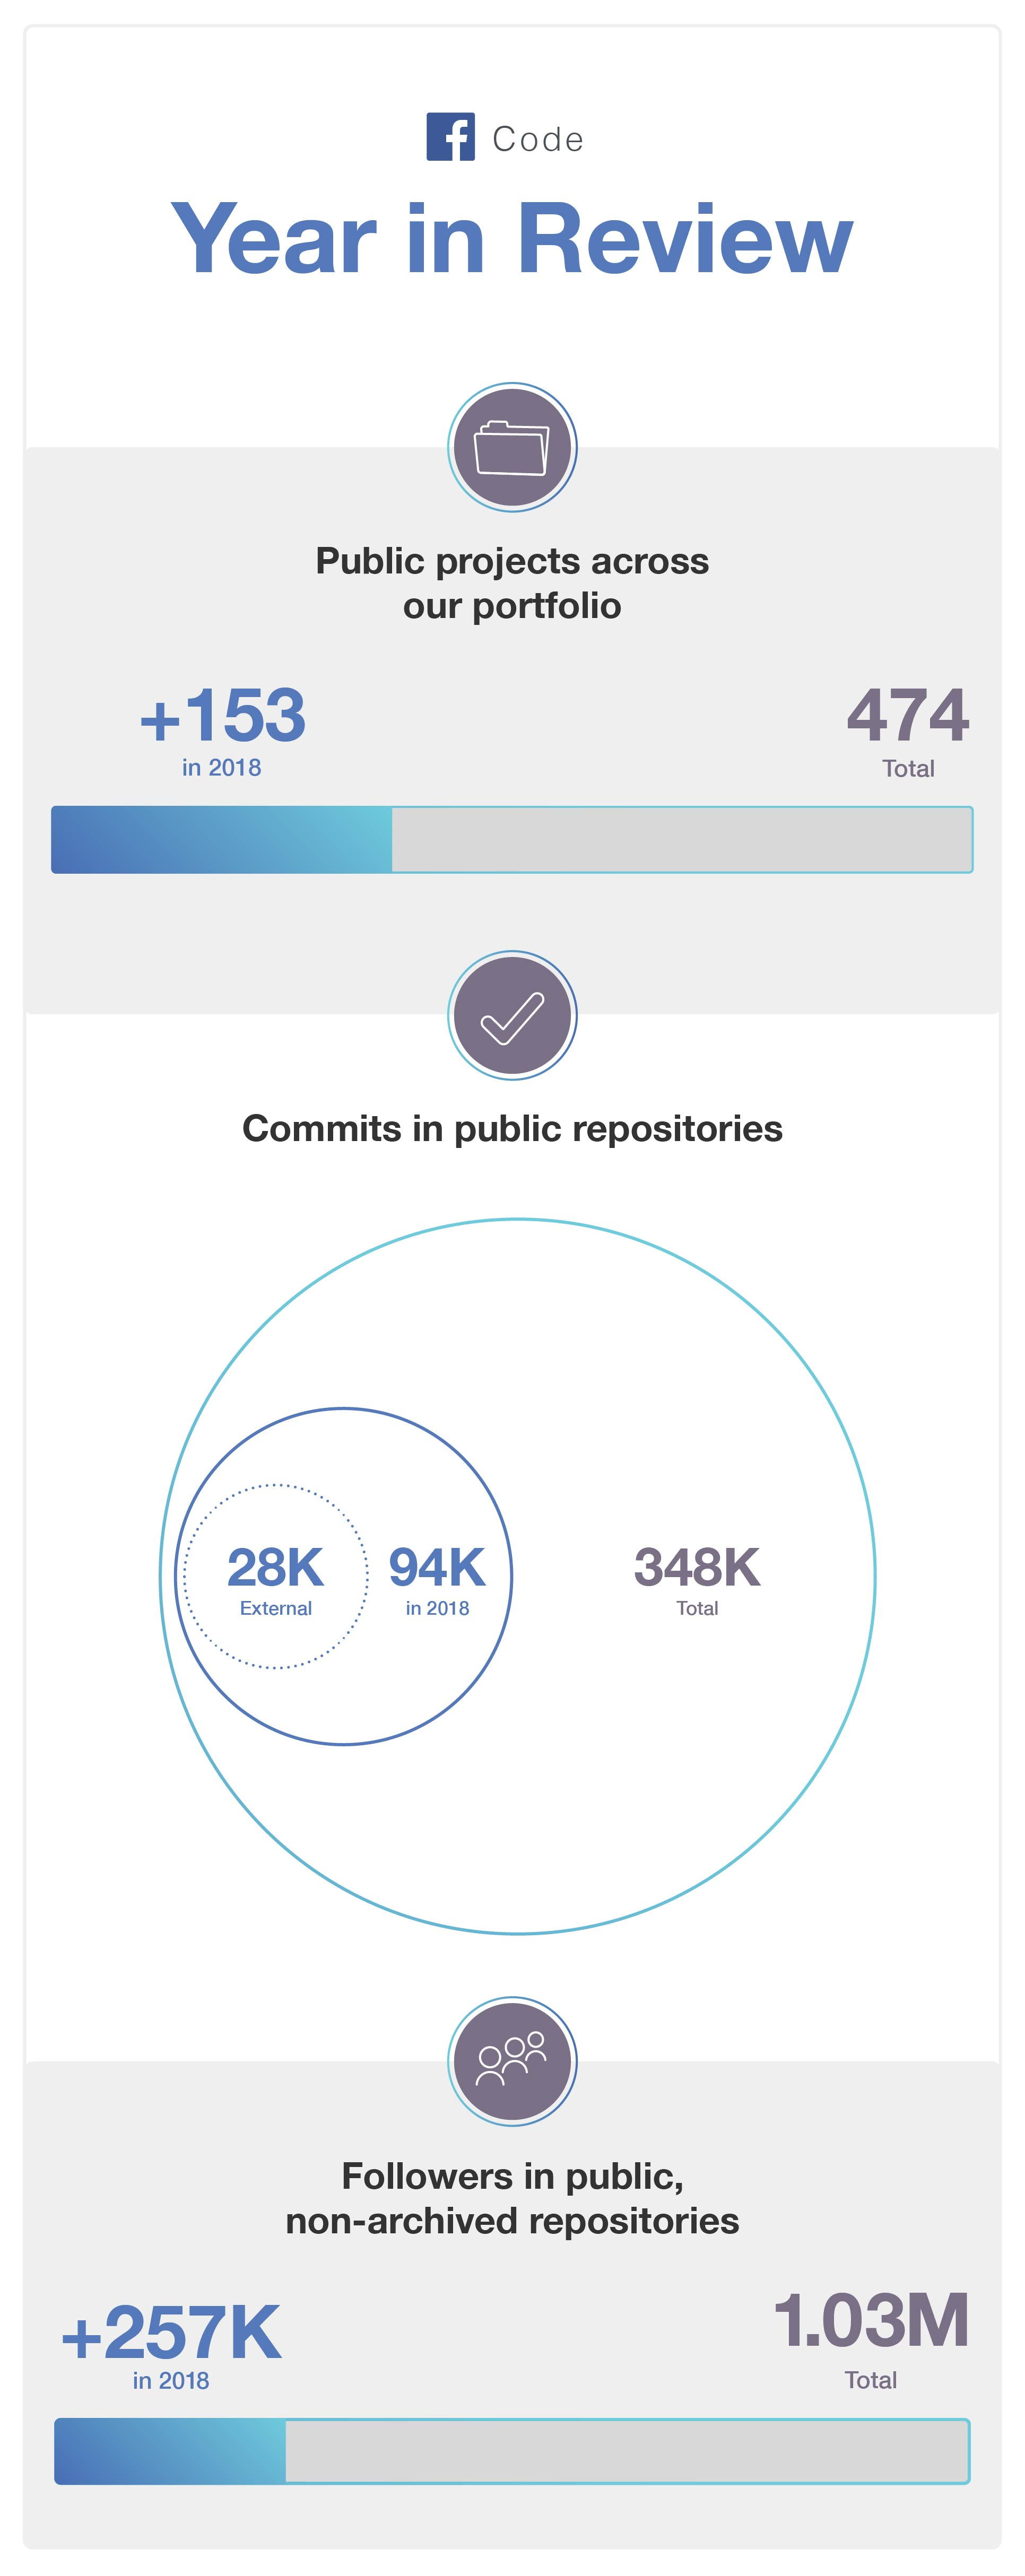 Number of Open Source projects released in 2018 by Facebook